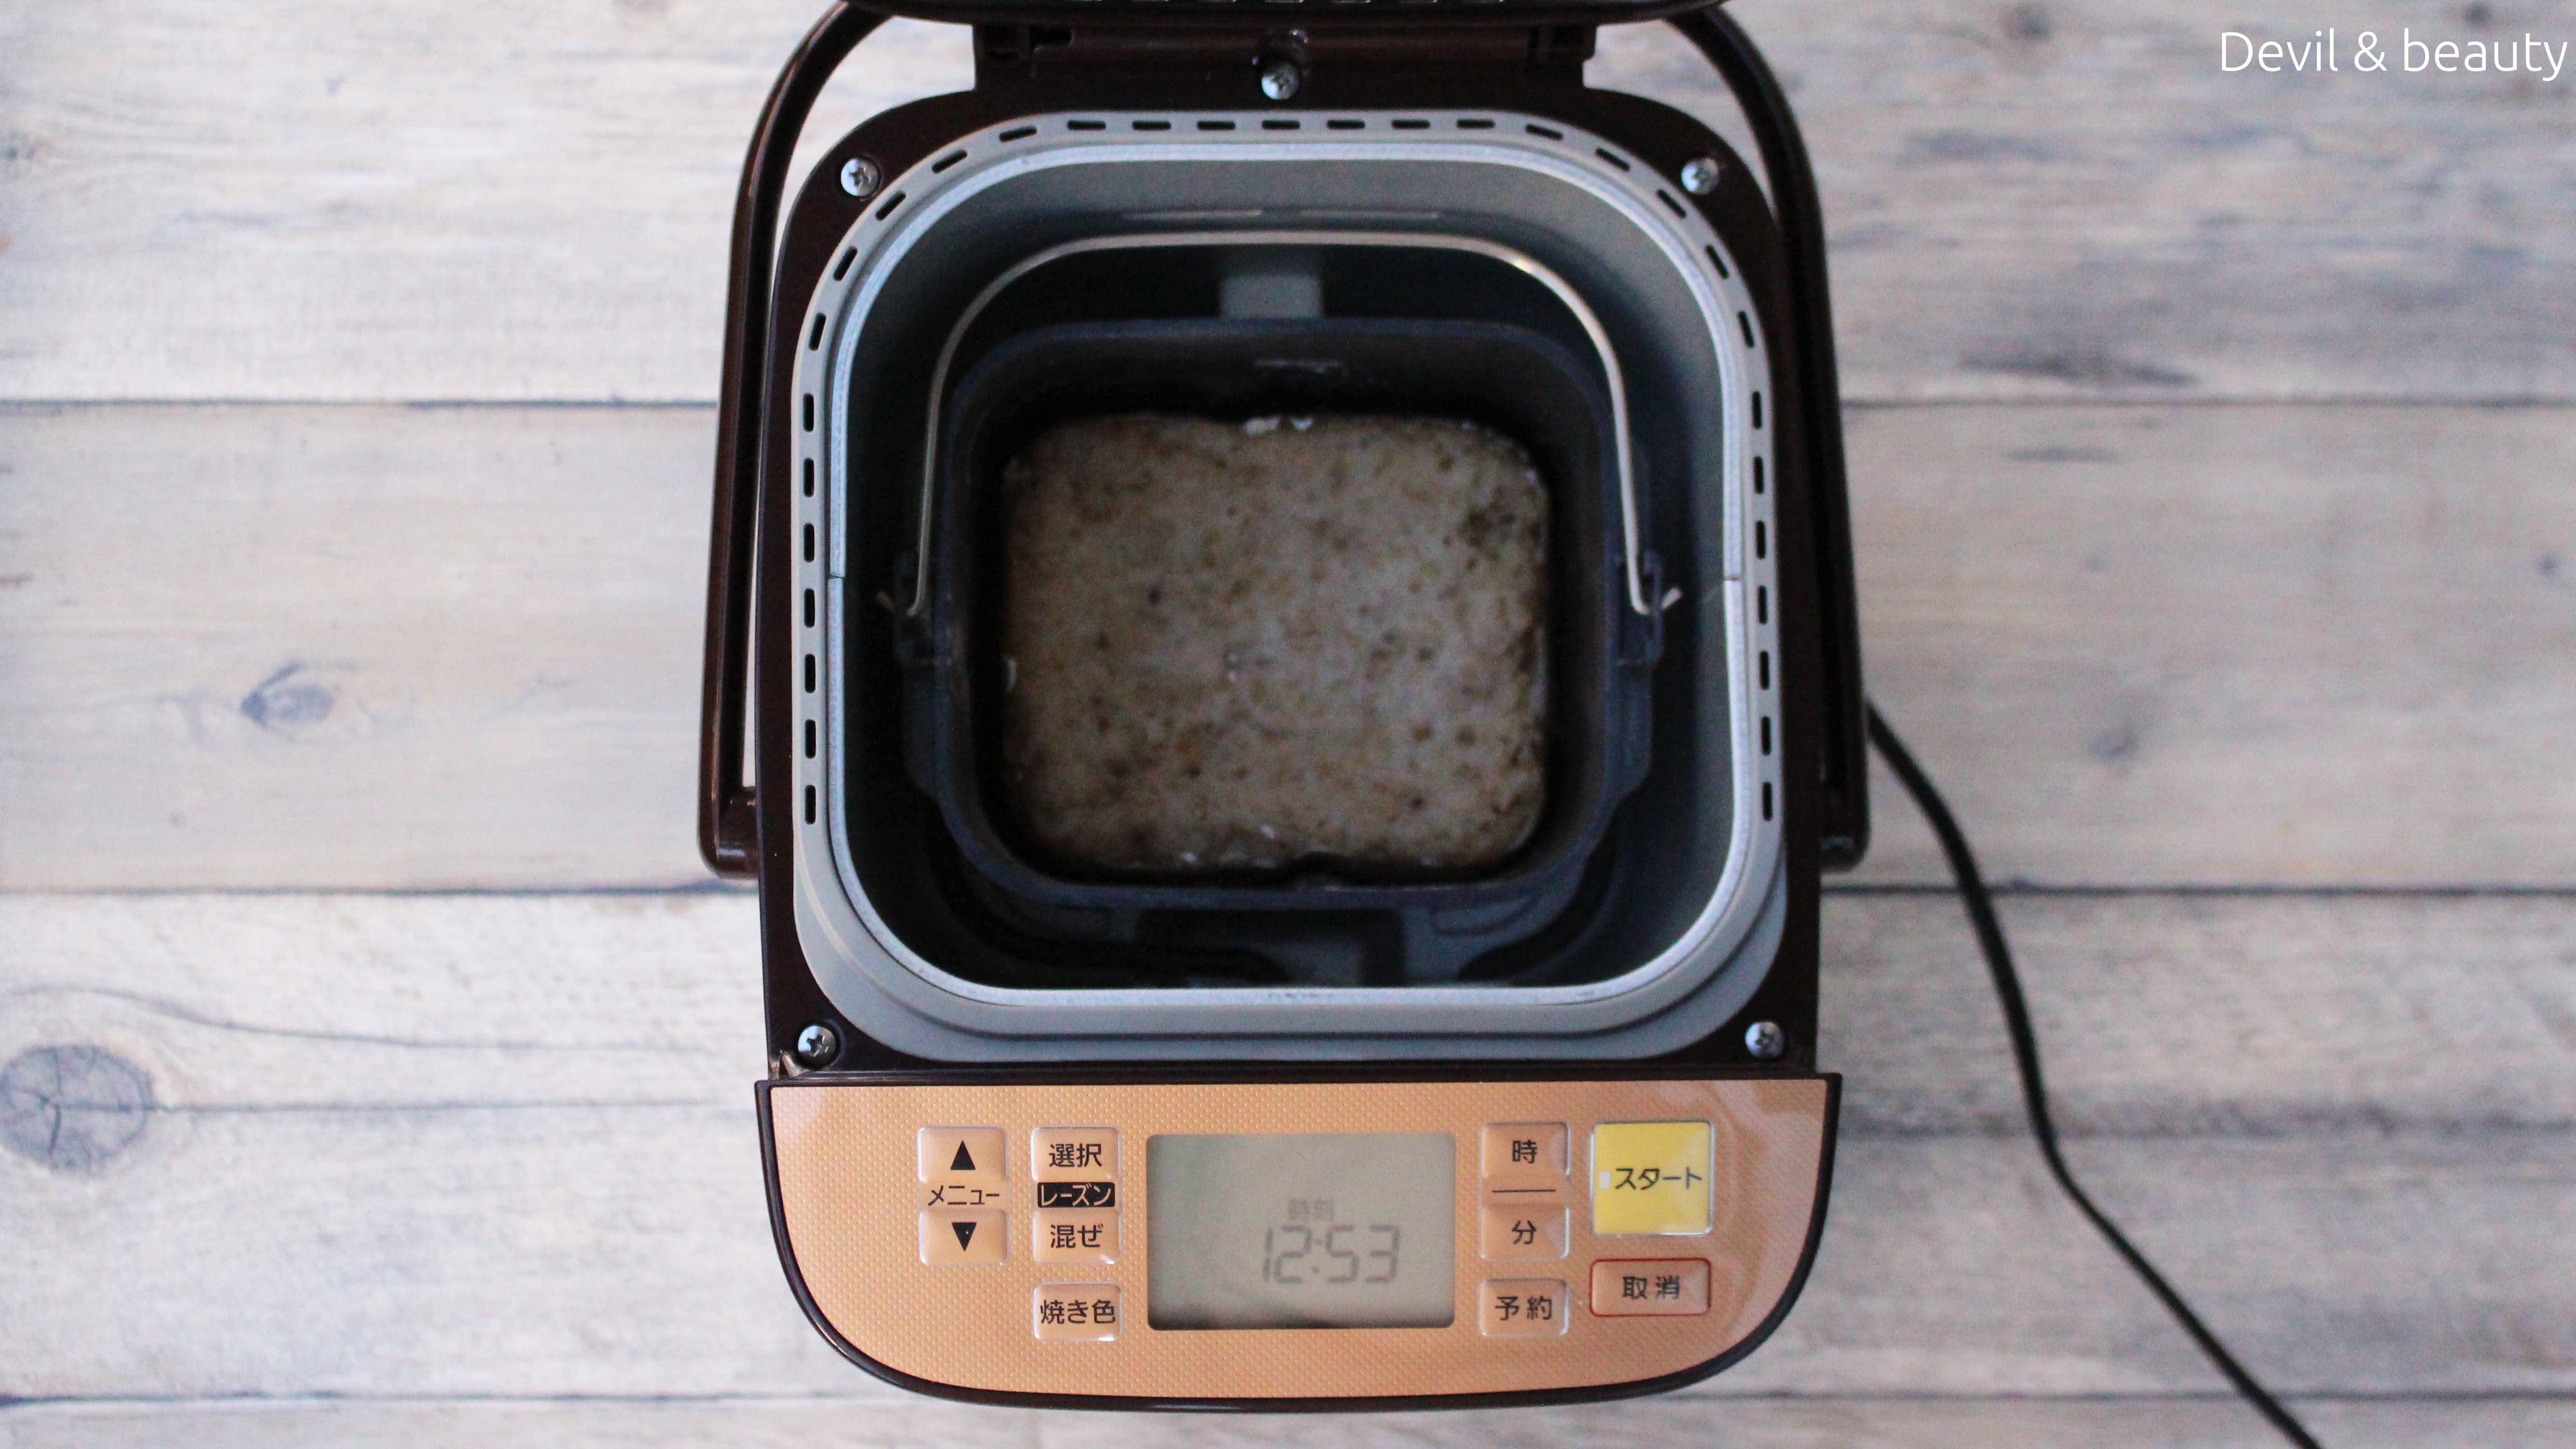 panasonic-sd-bmt1001-rice-bread9 - image